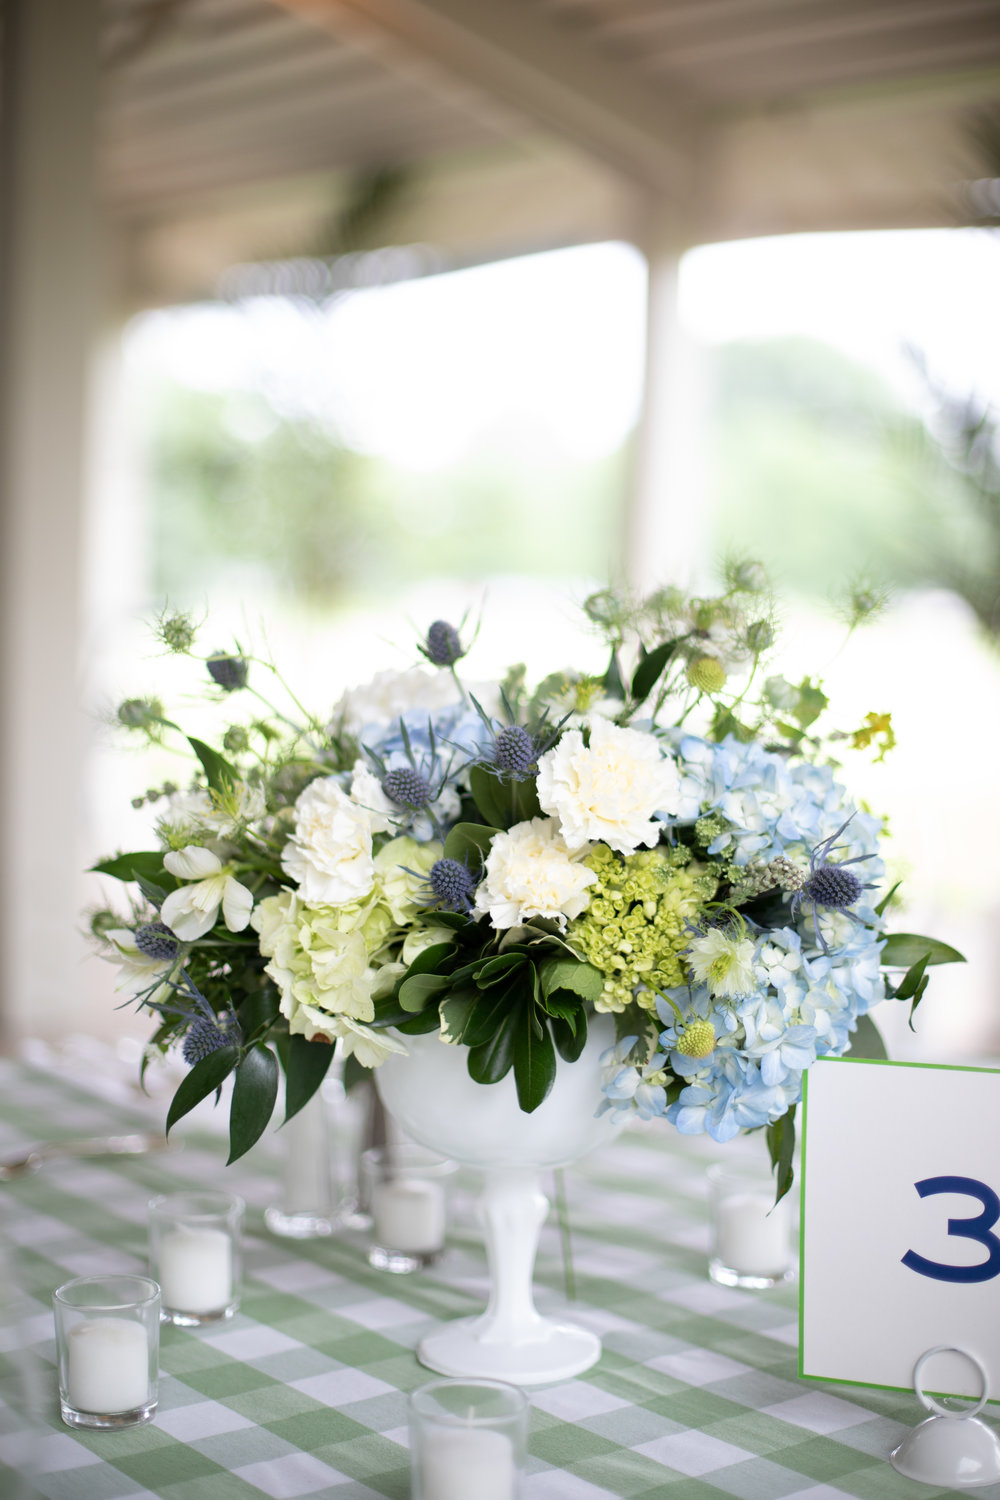 Colorful summer party with white and blue florals. Floral design www.yellowcanaryonline.com